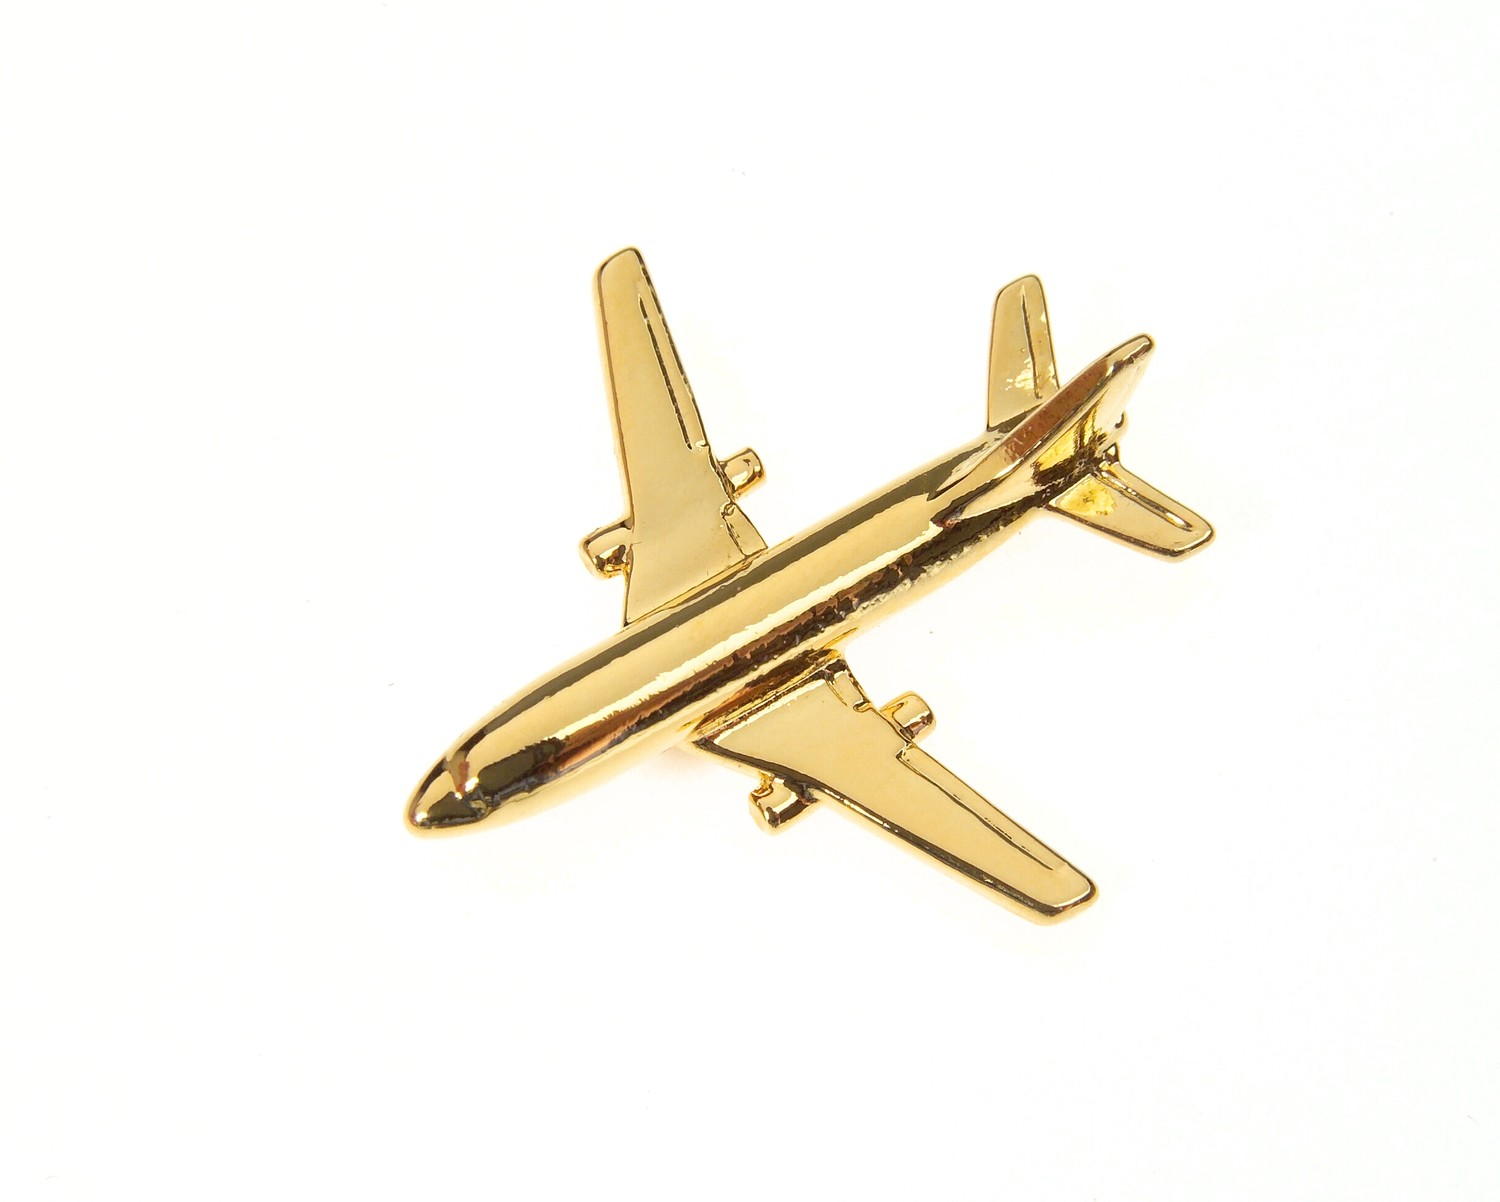 Boeing 737-200 Gold Plated Tie / Lapel Pin